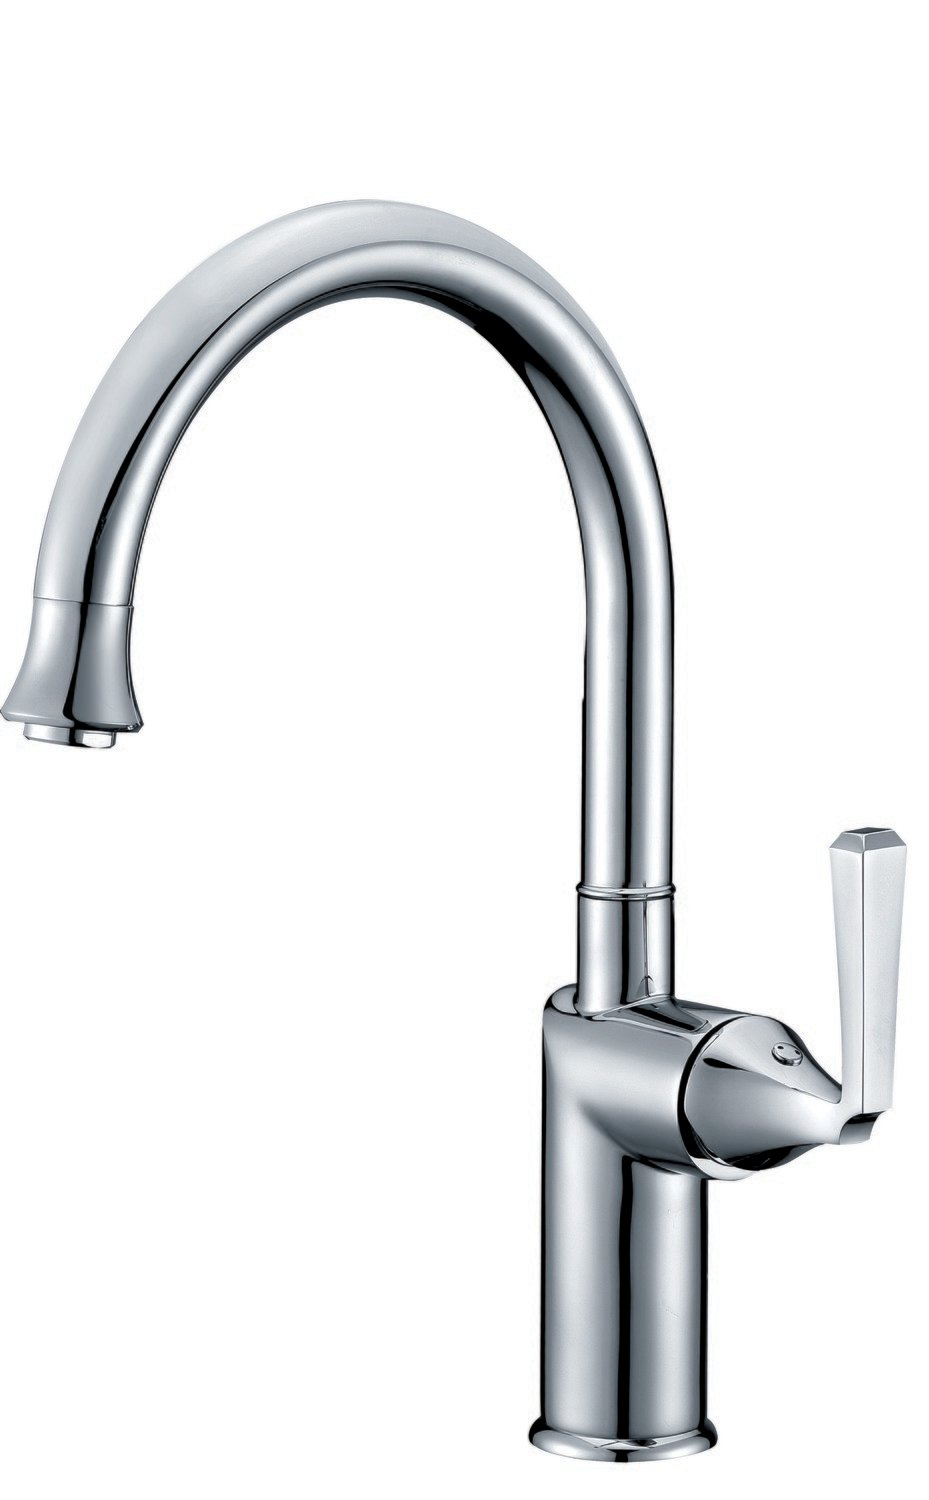 Single-handle lavatory/bar faucet